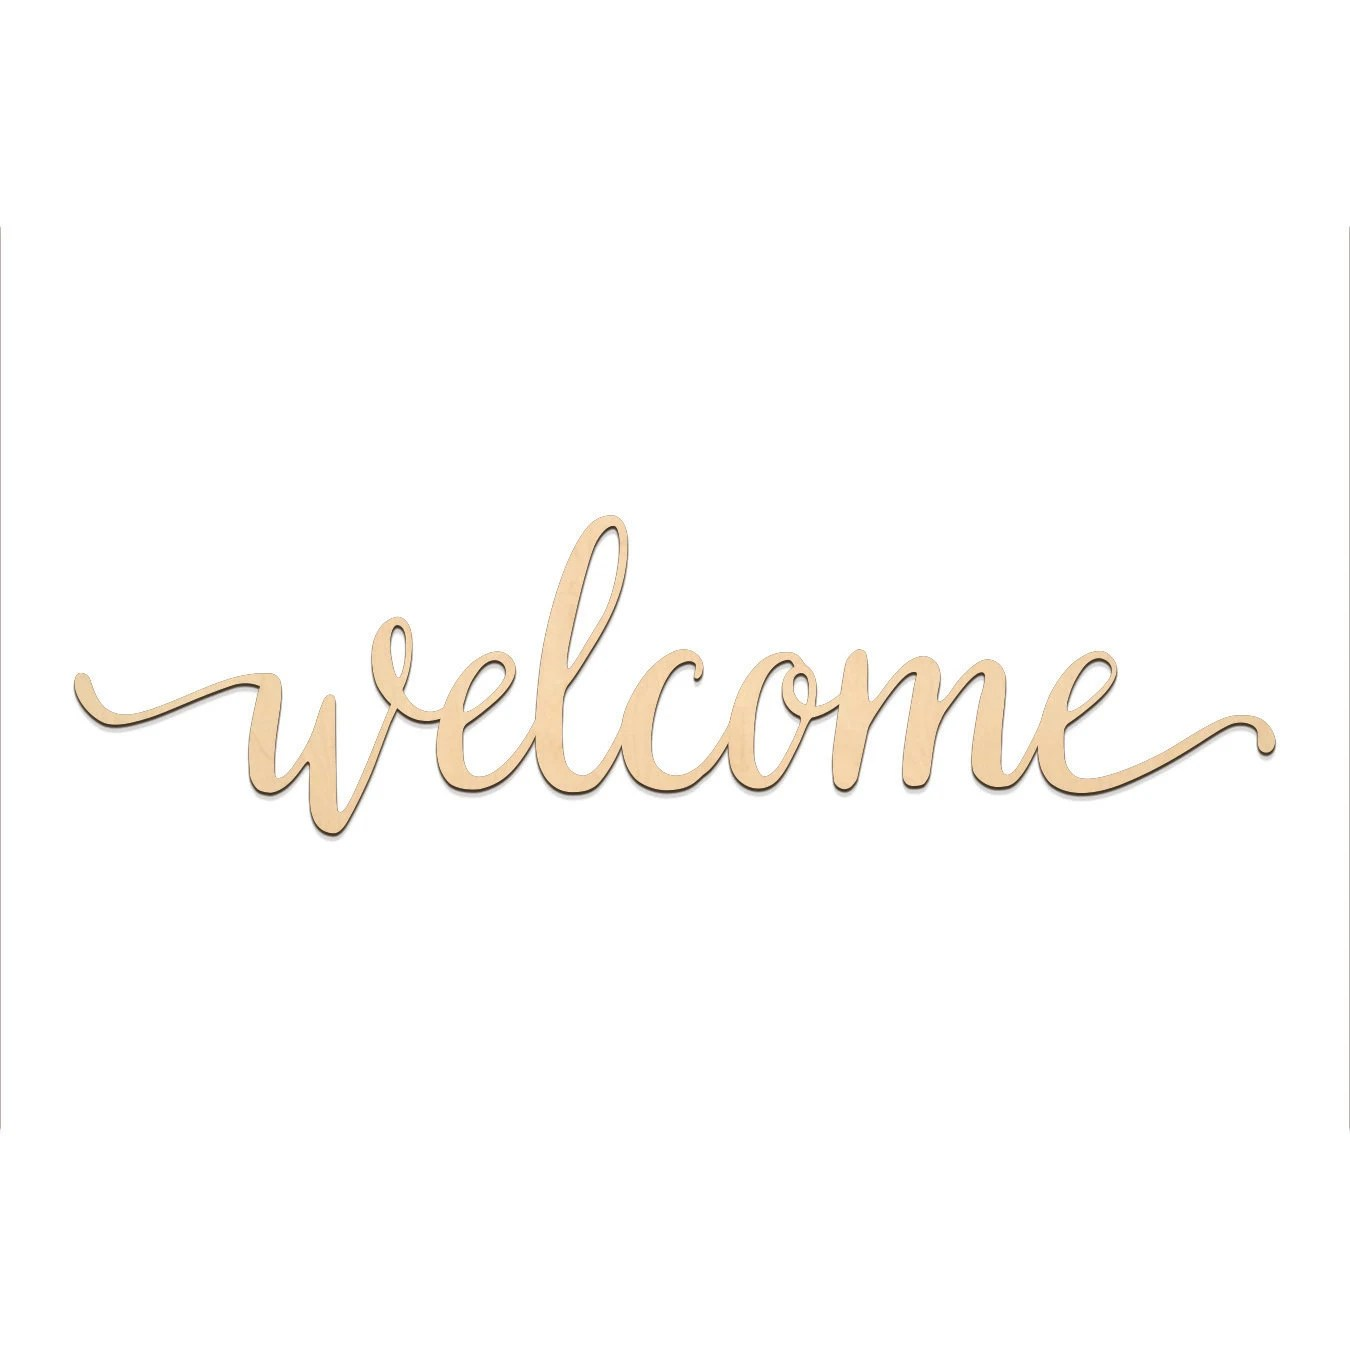 Welcome Script Word Wood Sign Wooden words Sign Art Rustic Etsy